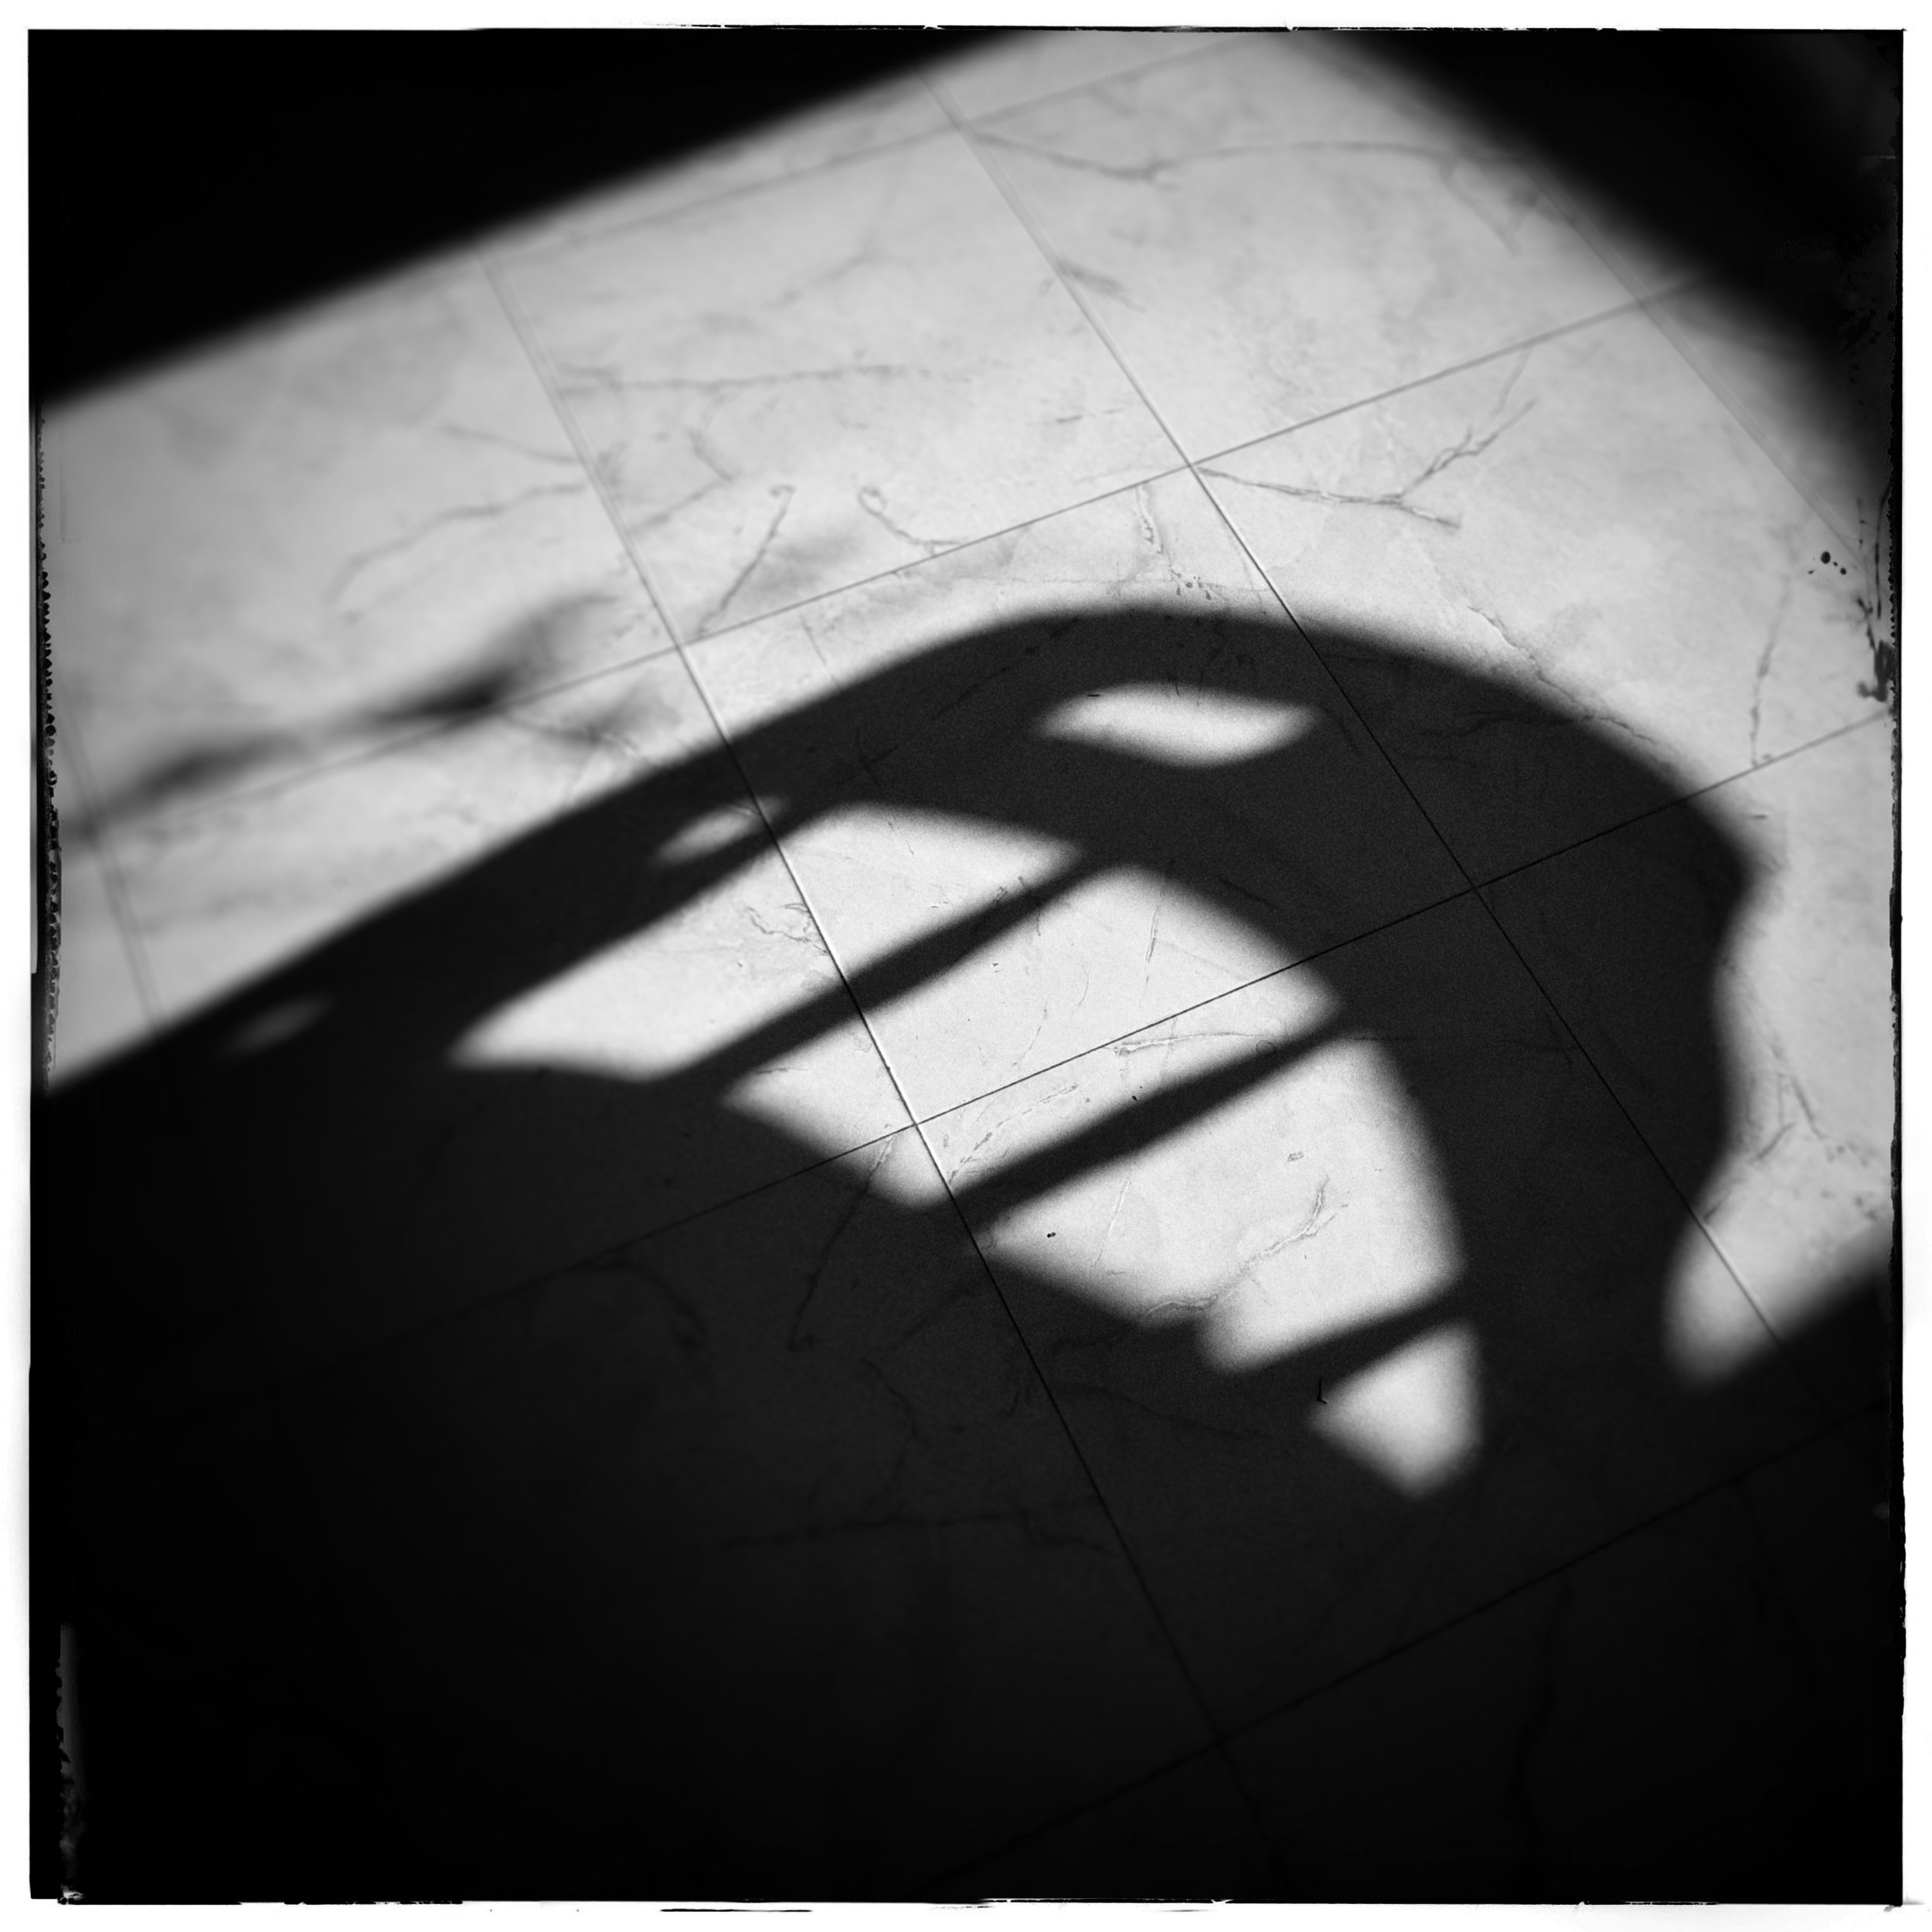 Day 194 - July 13: There's a shadow monster on the floor...